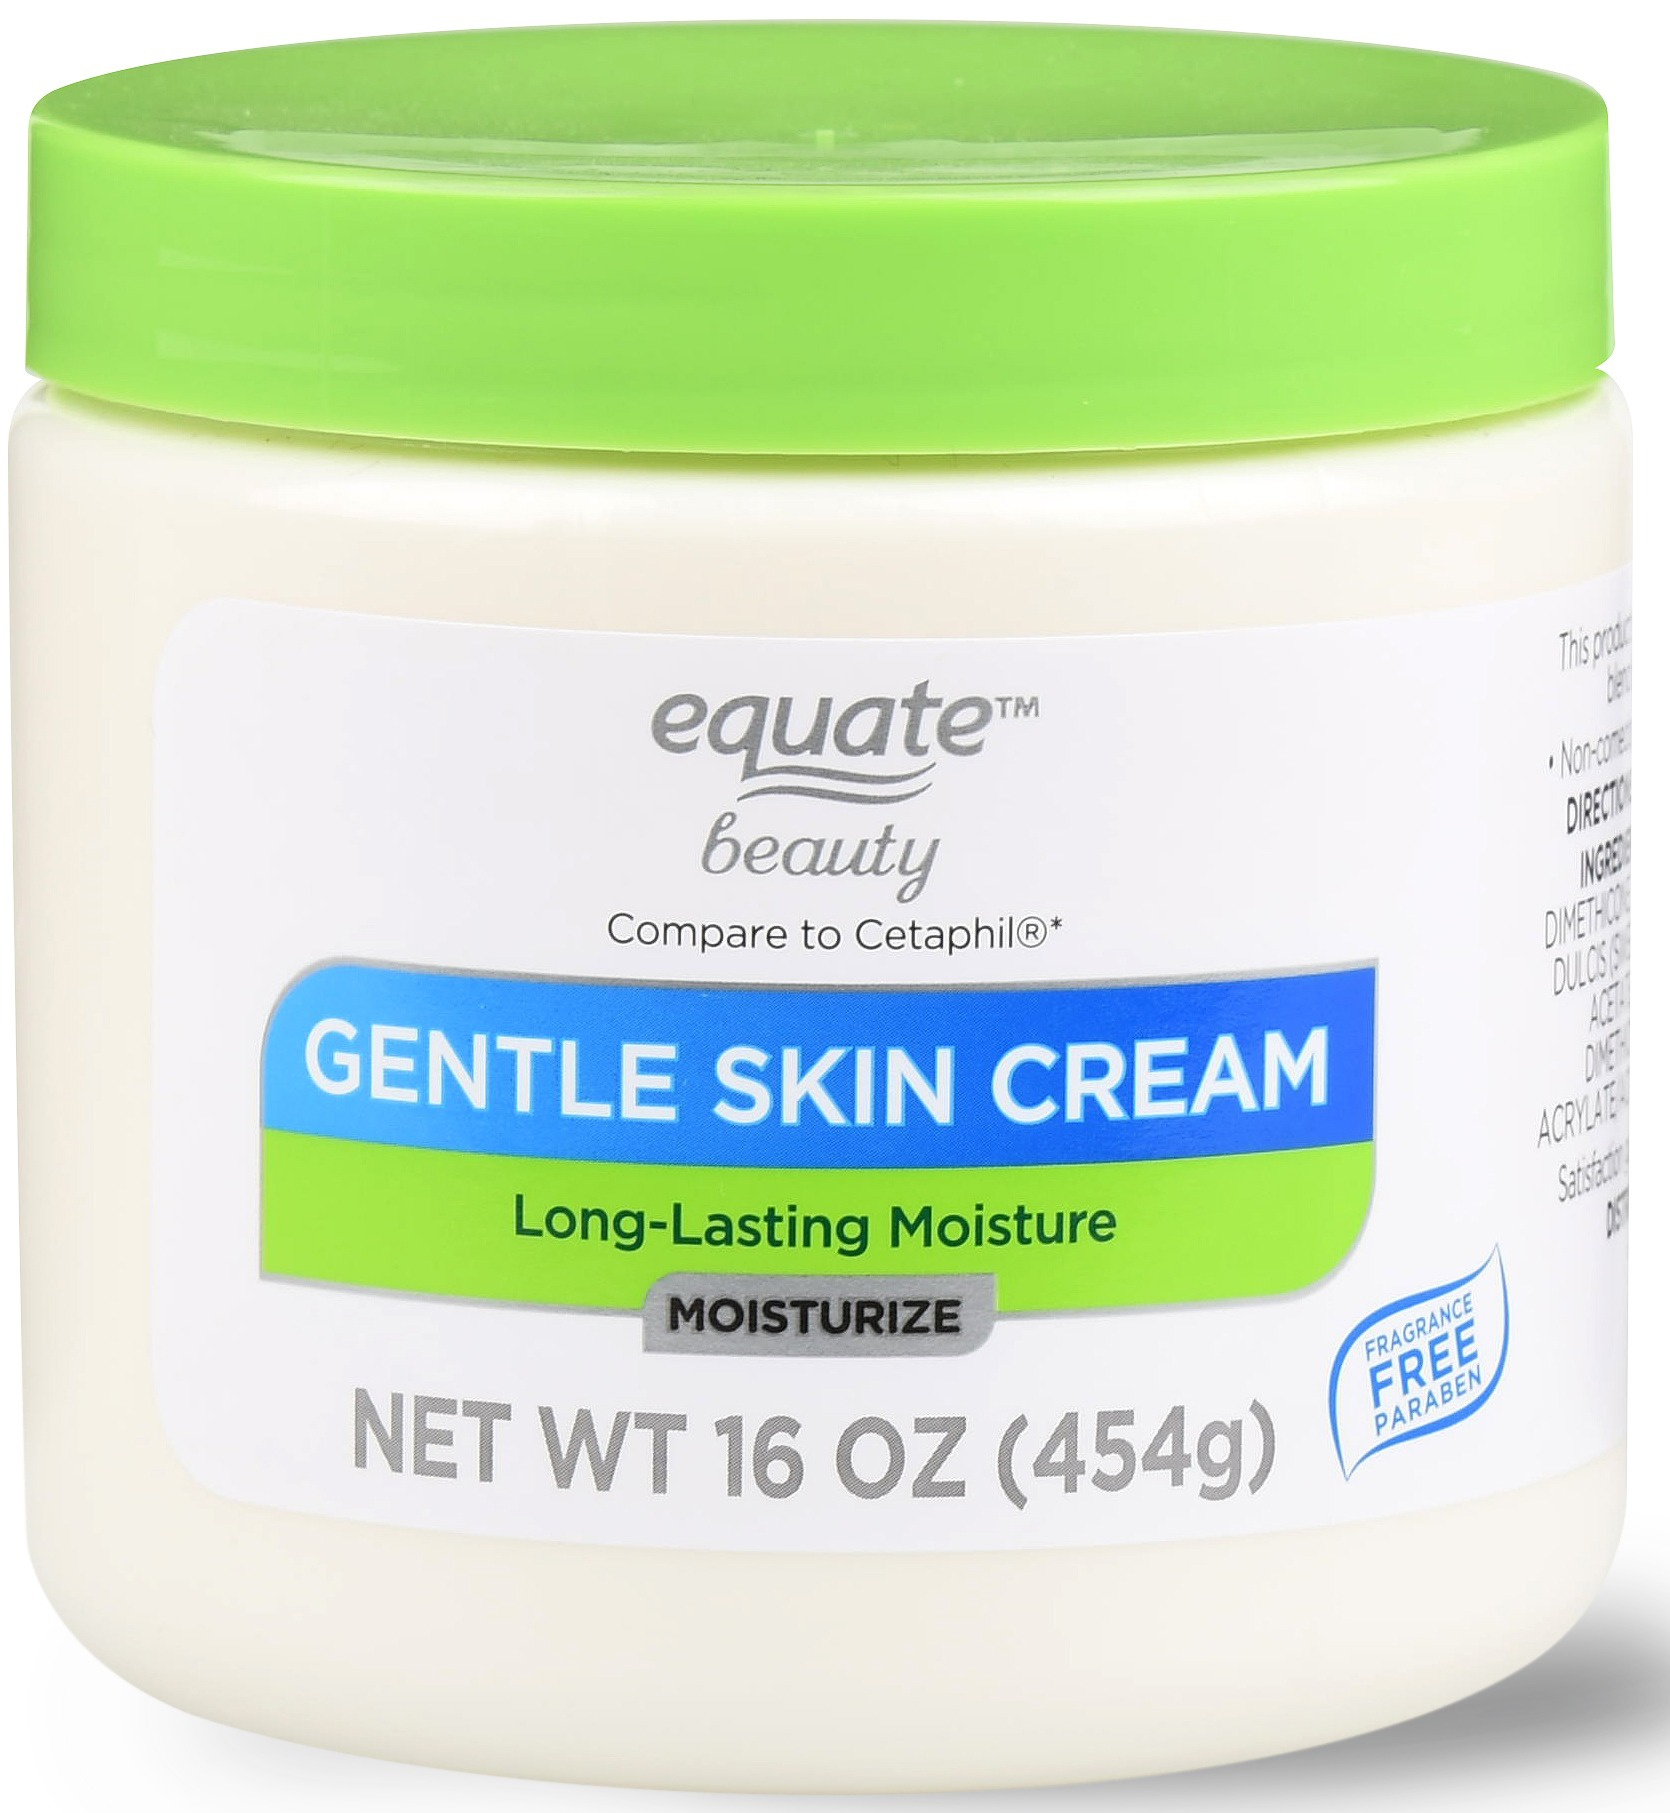 Equate Beauty Gentle Skin Cream With Long-lasting Moisture